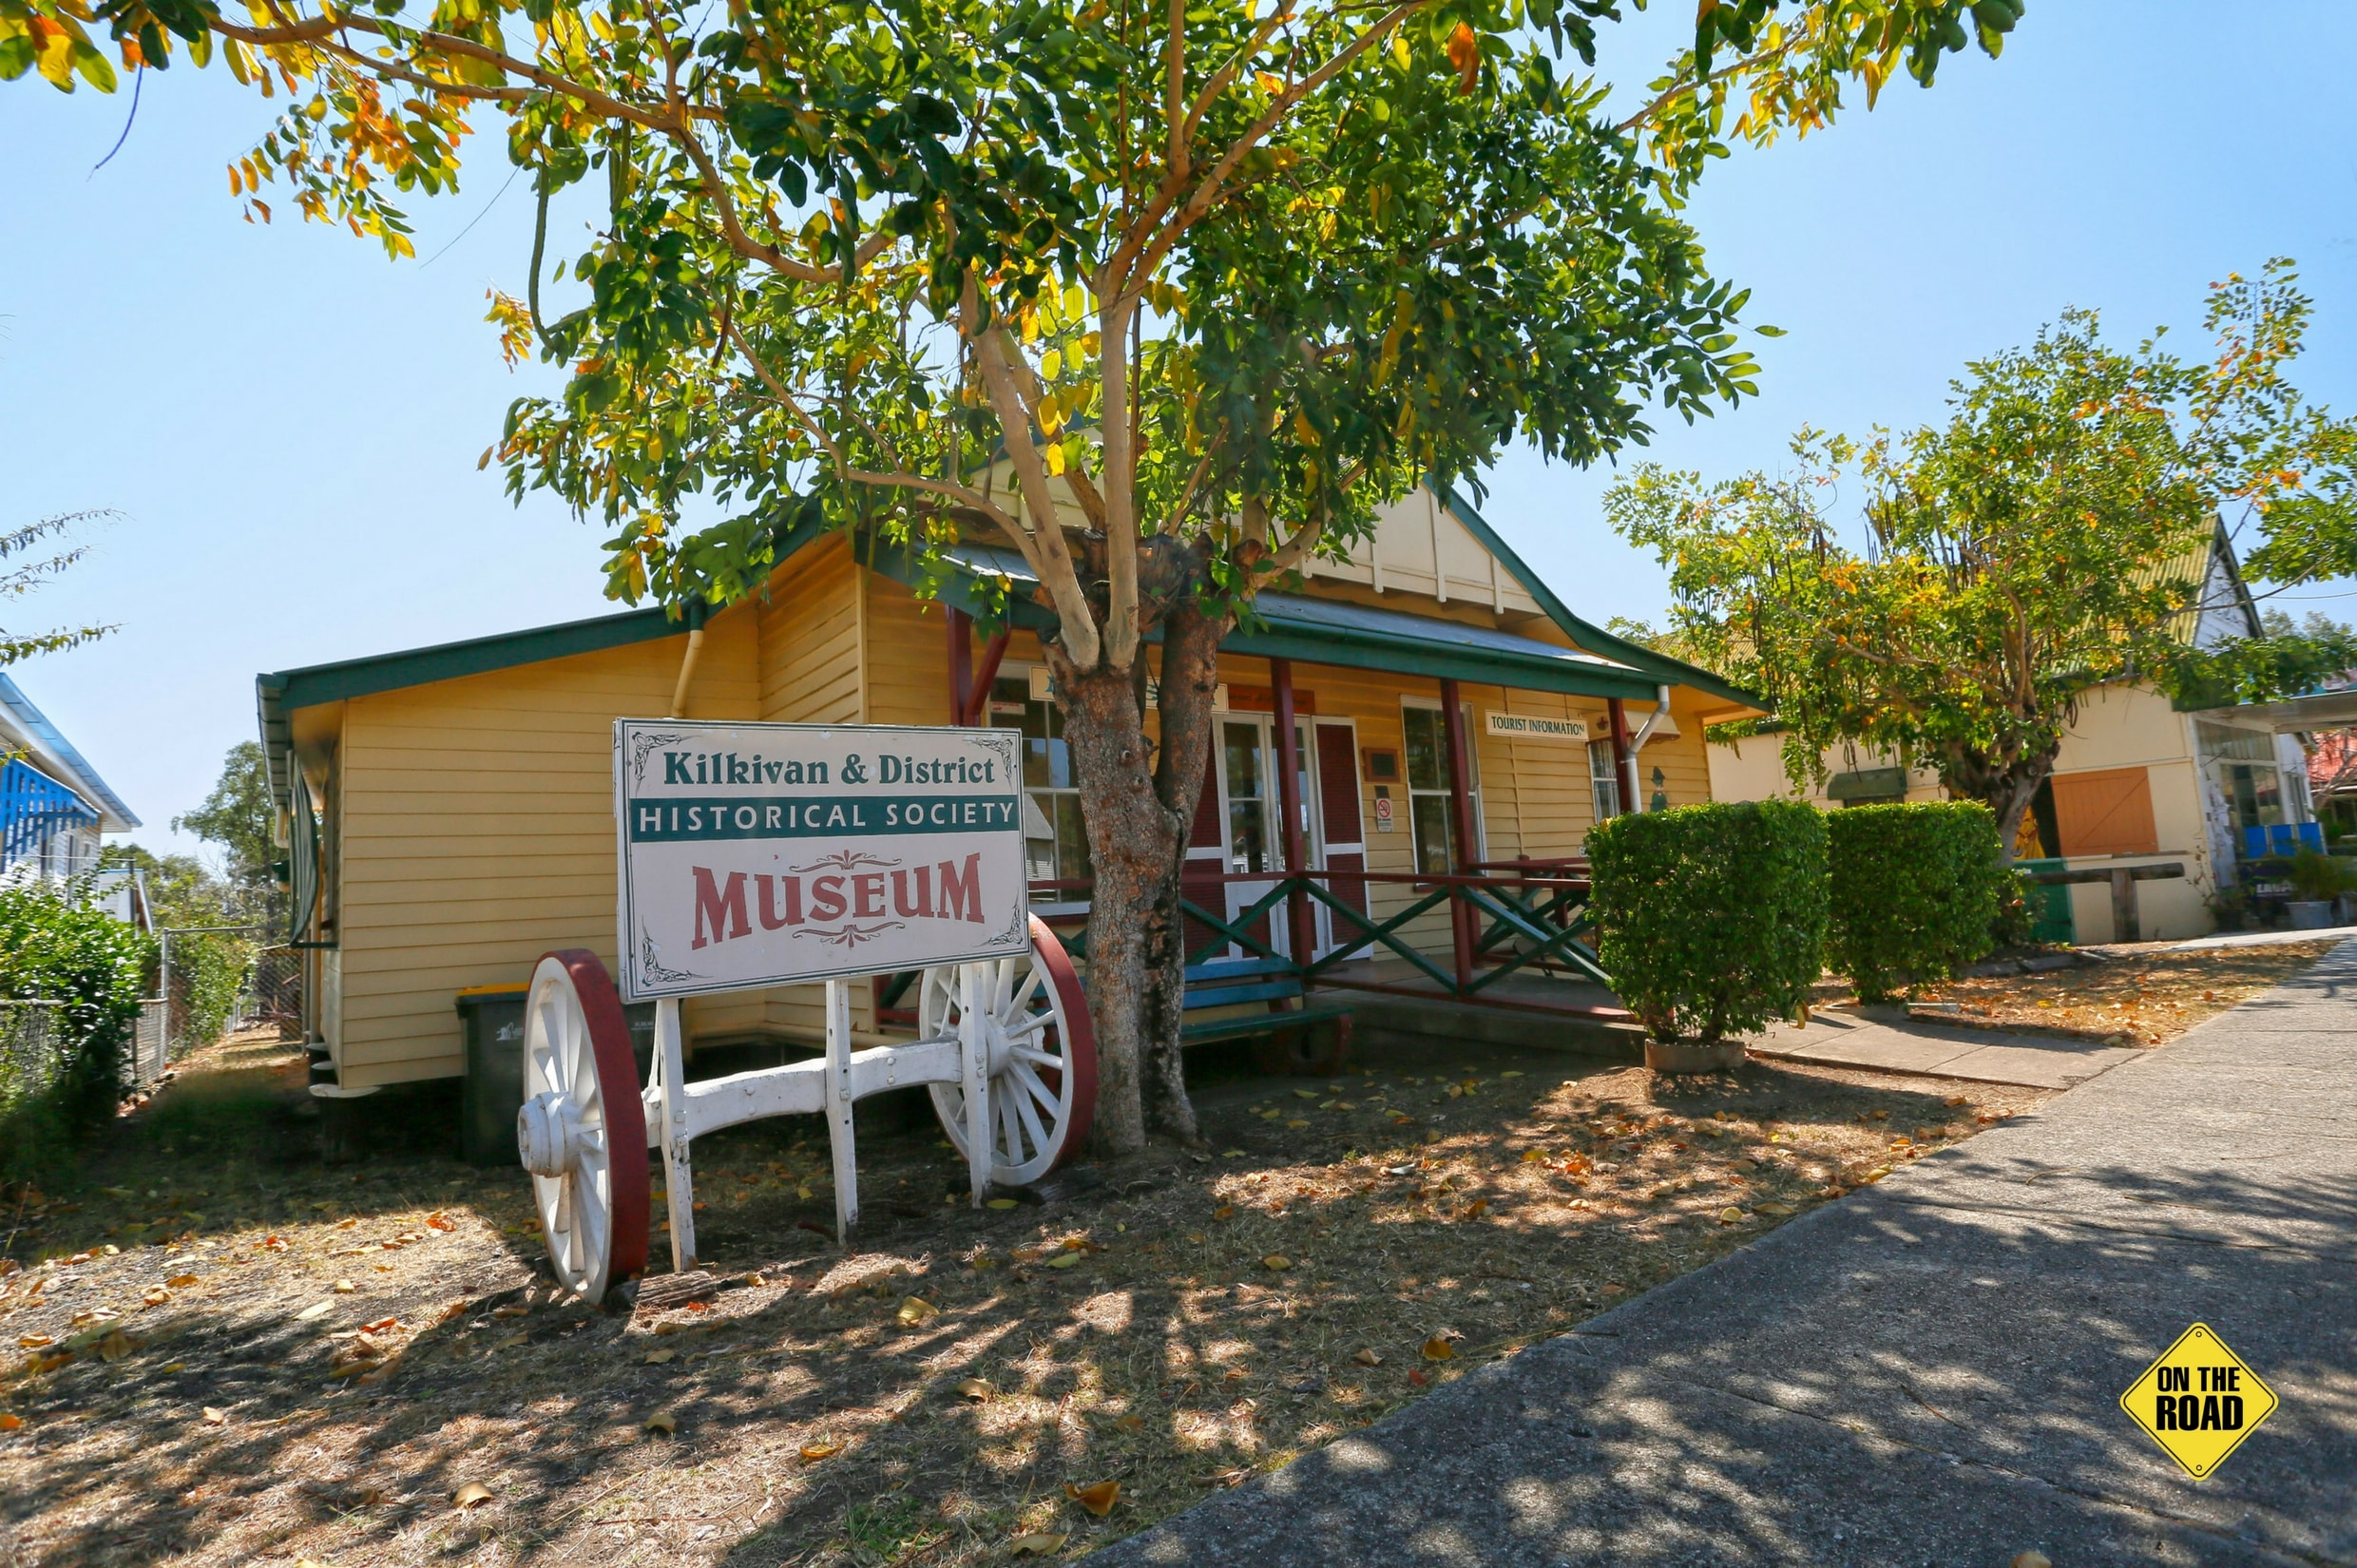 The Kilkivan and District Historical Society Museum is well worth a visit